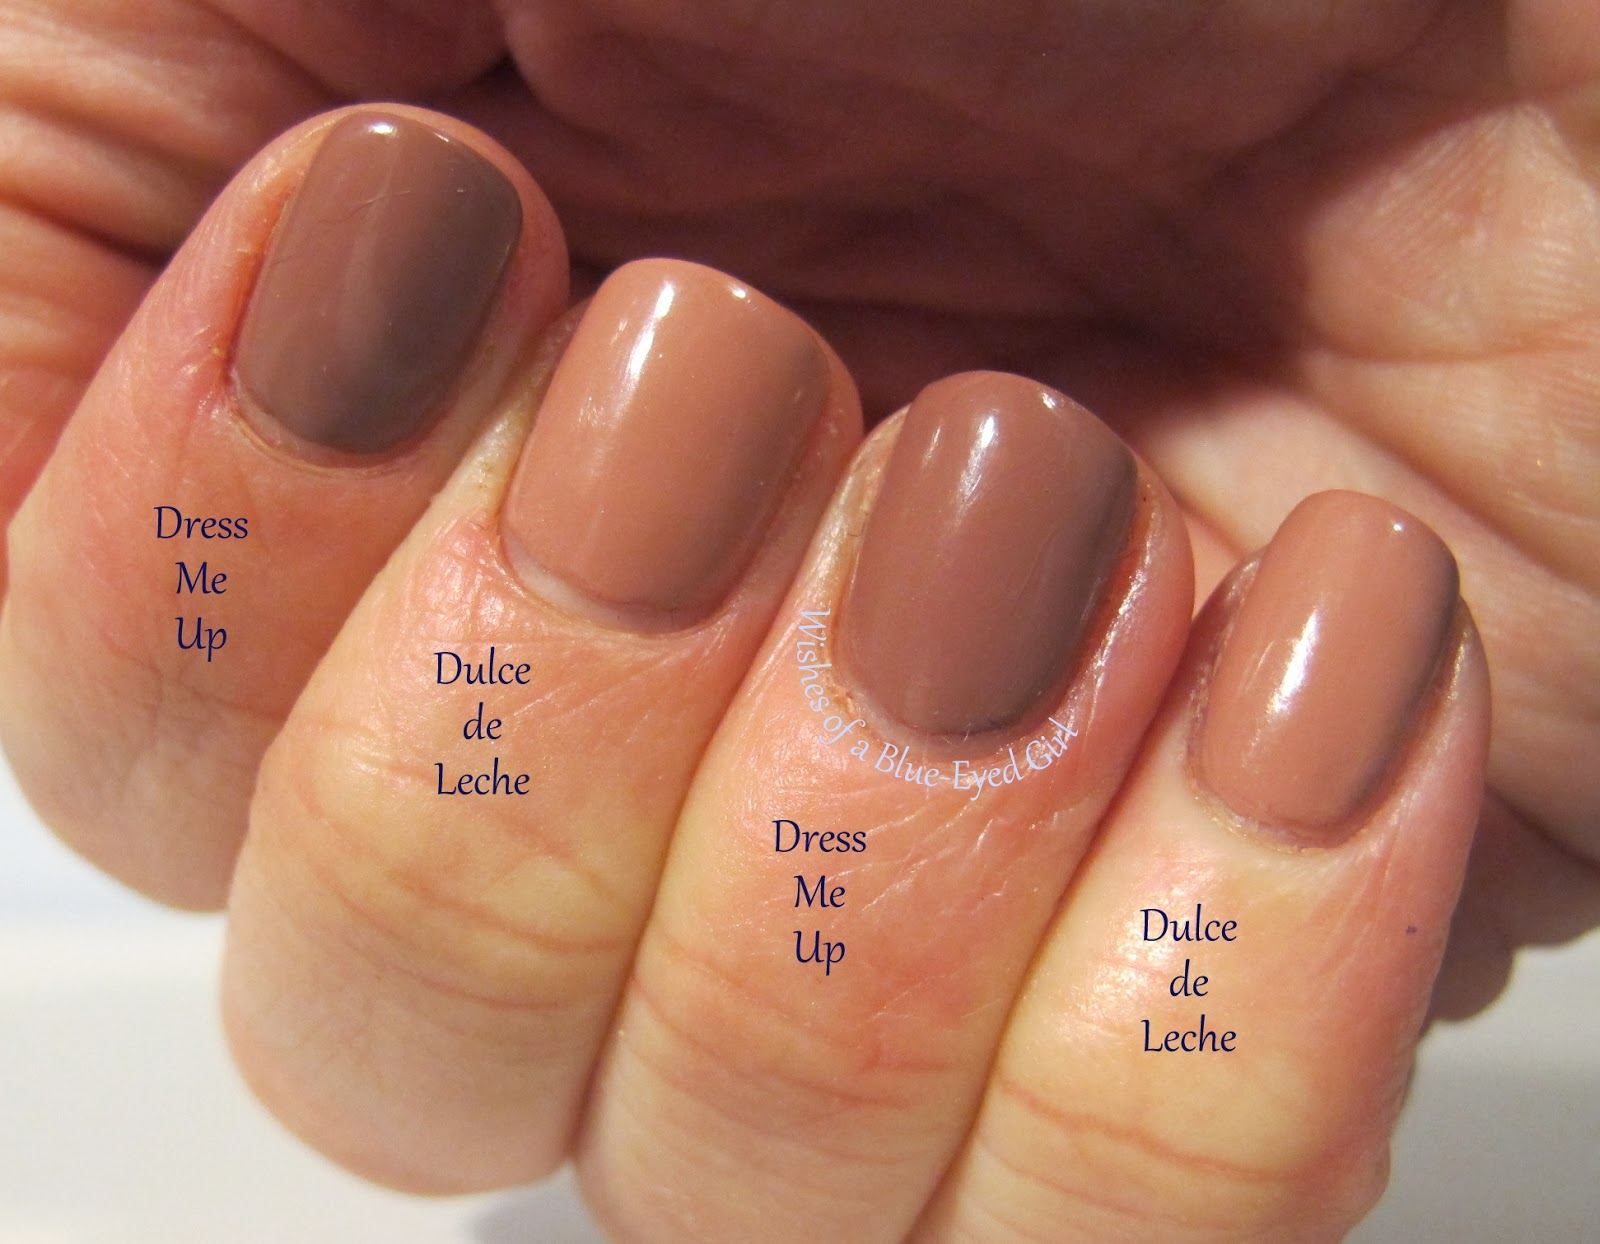 Wishes Of A Blue Eyed Comparison Thursday Dusty Pink Cremes Pion Nail Lacquer Opi Dulce De Leche Indoor Light Cry Candle